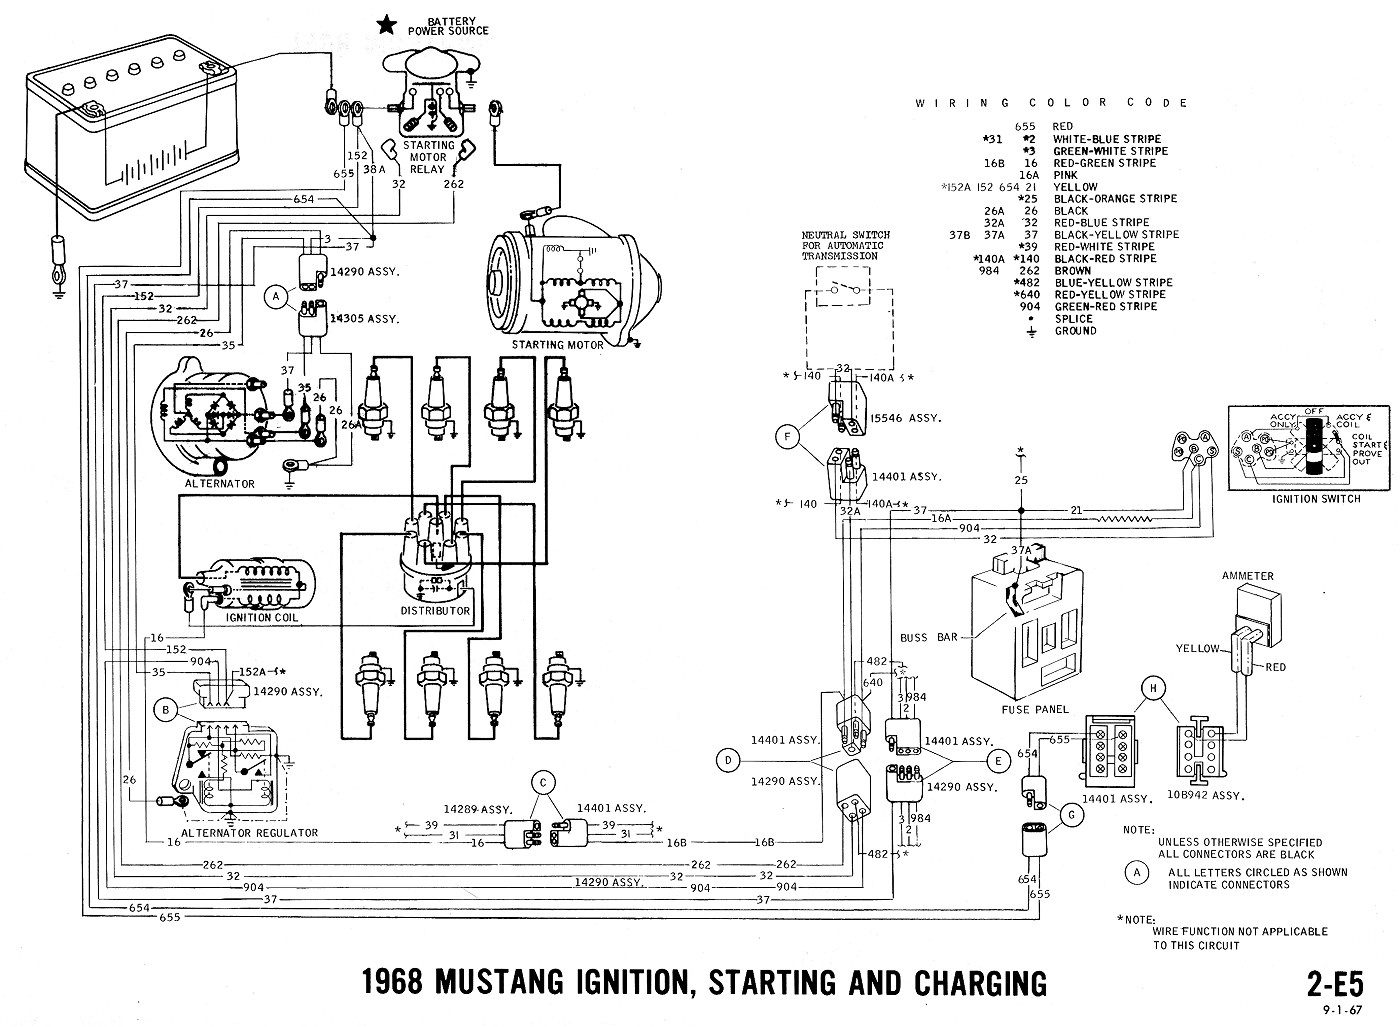 E5 1968 mustang wiring diagrams evolving software 1965 mustang alternator wiring diagram at aneh.co